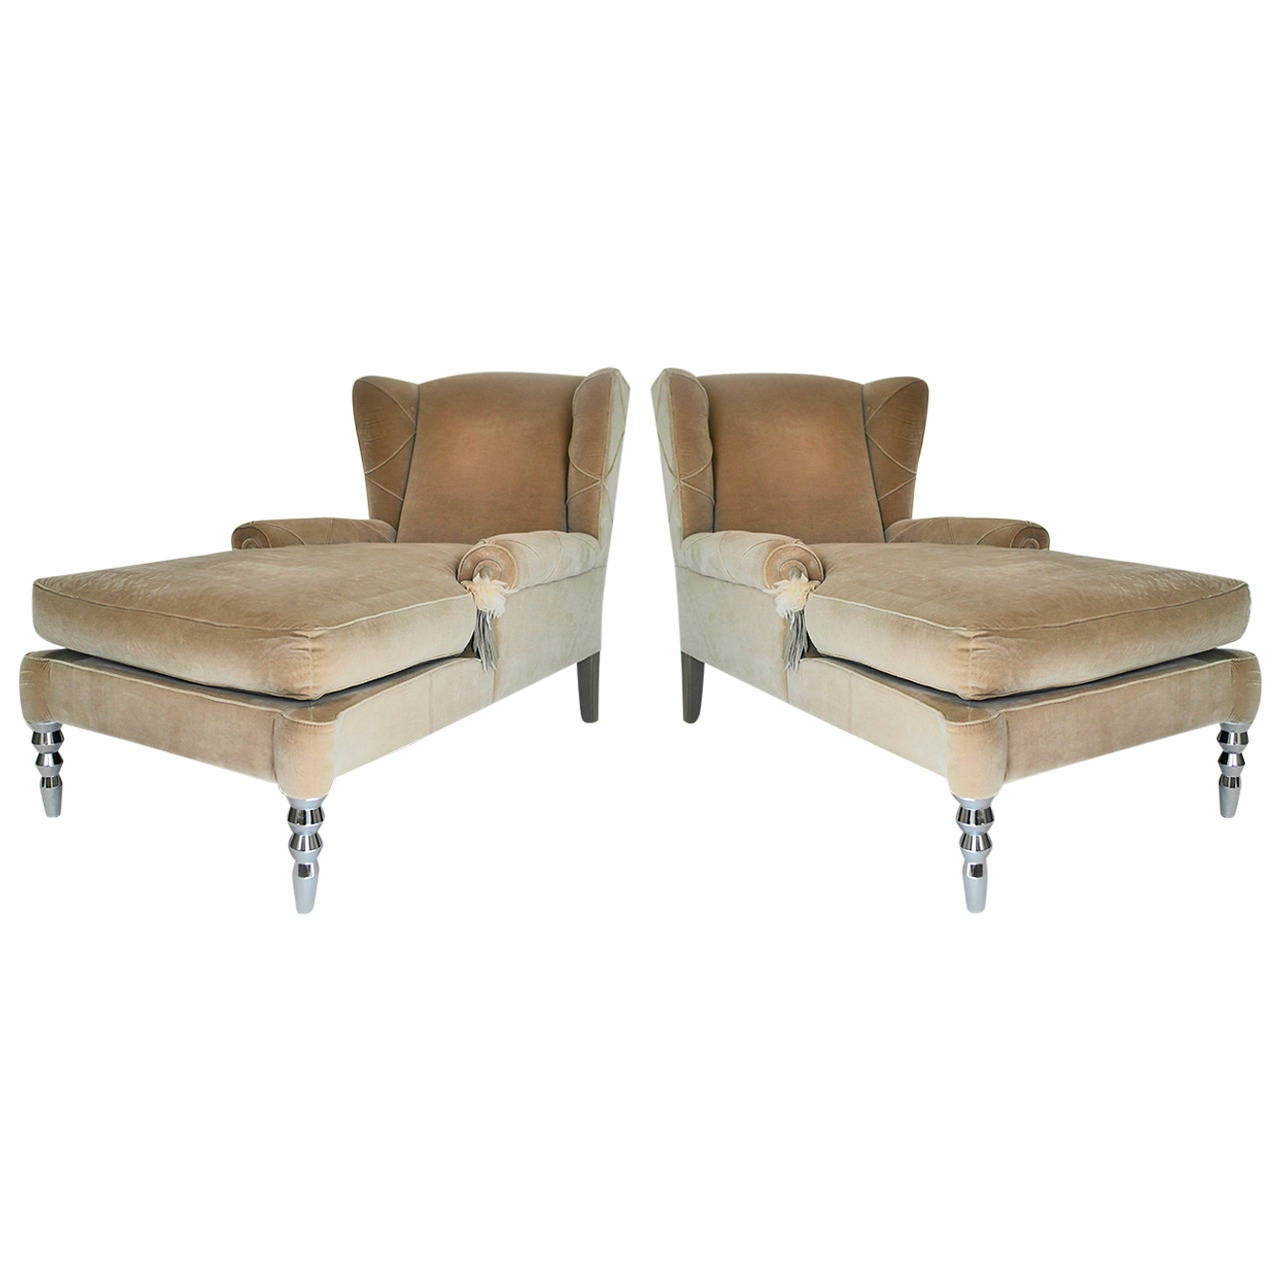 Pair of roberto cavalli chaise day bed wingback chairs for for Chaise longue day bed